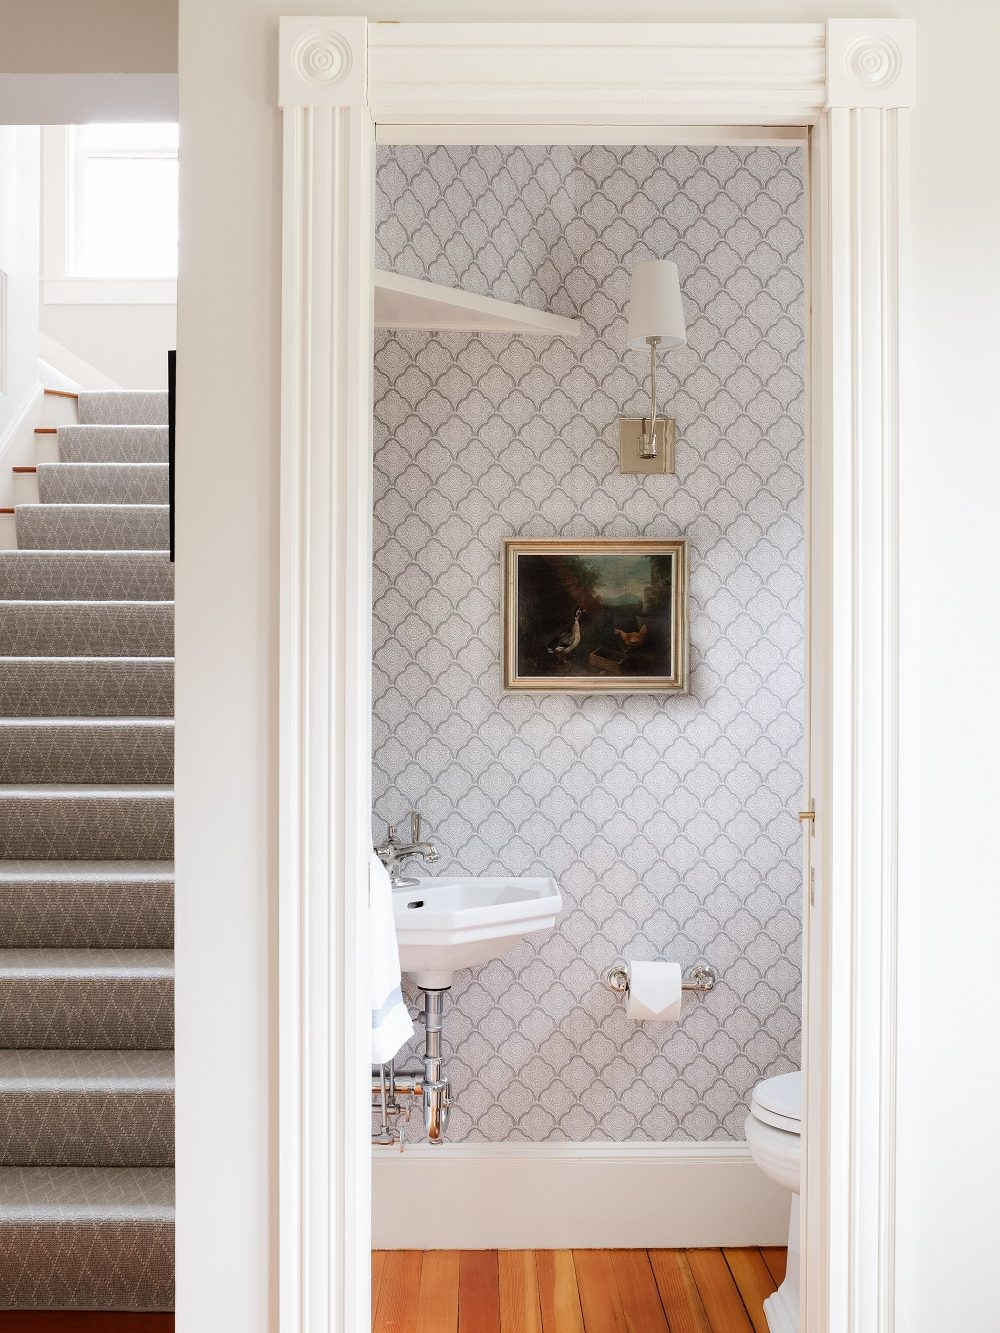 Powder room with corner sink and patterned wallpaper